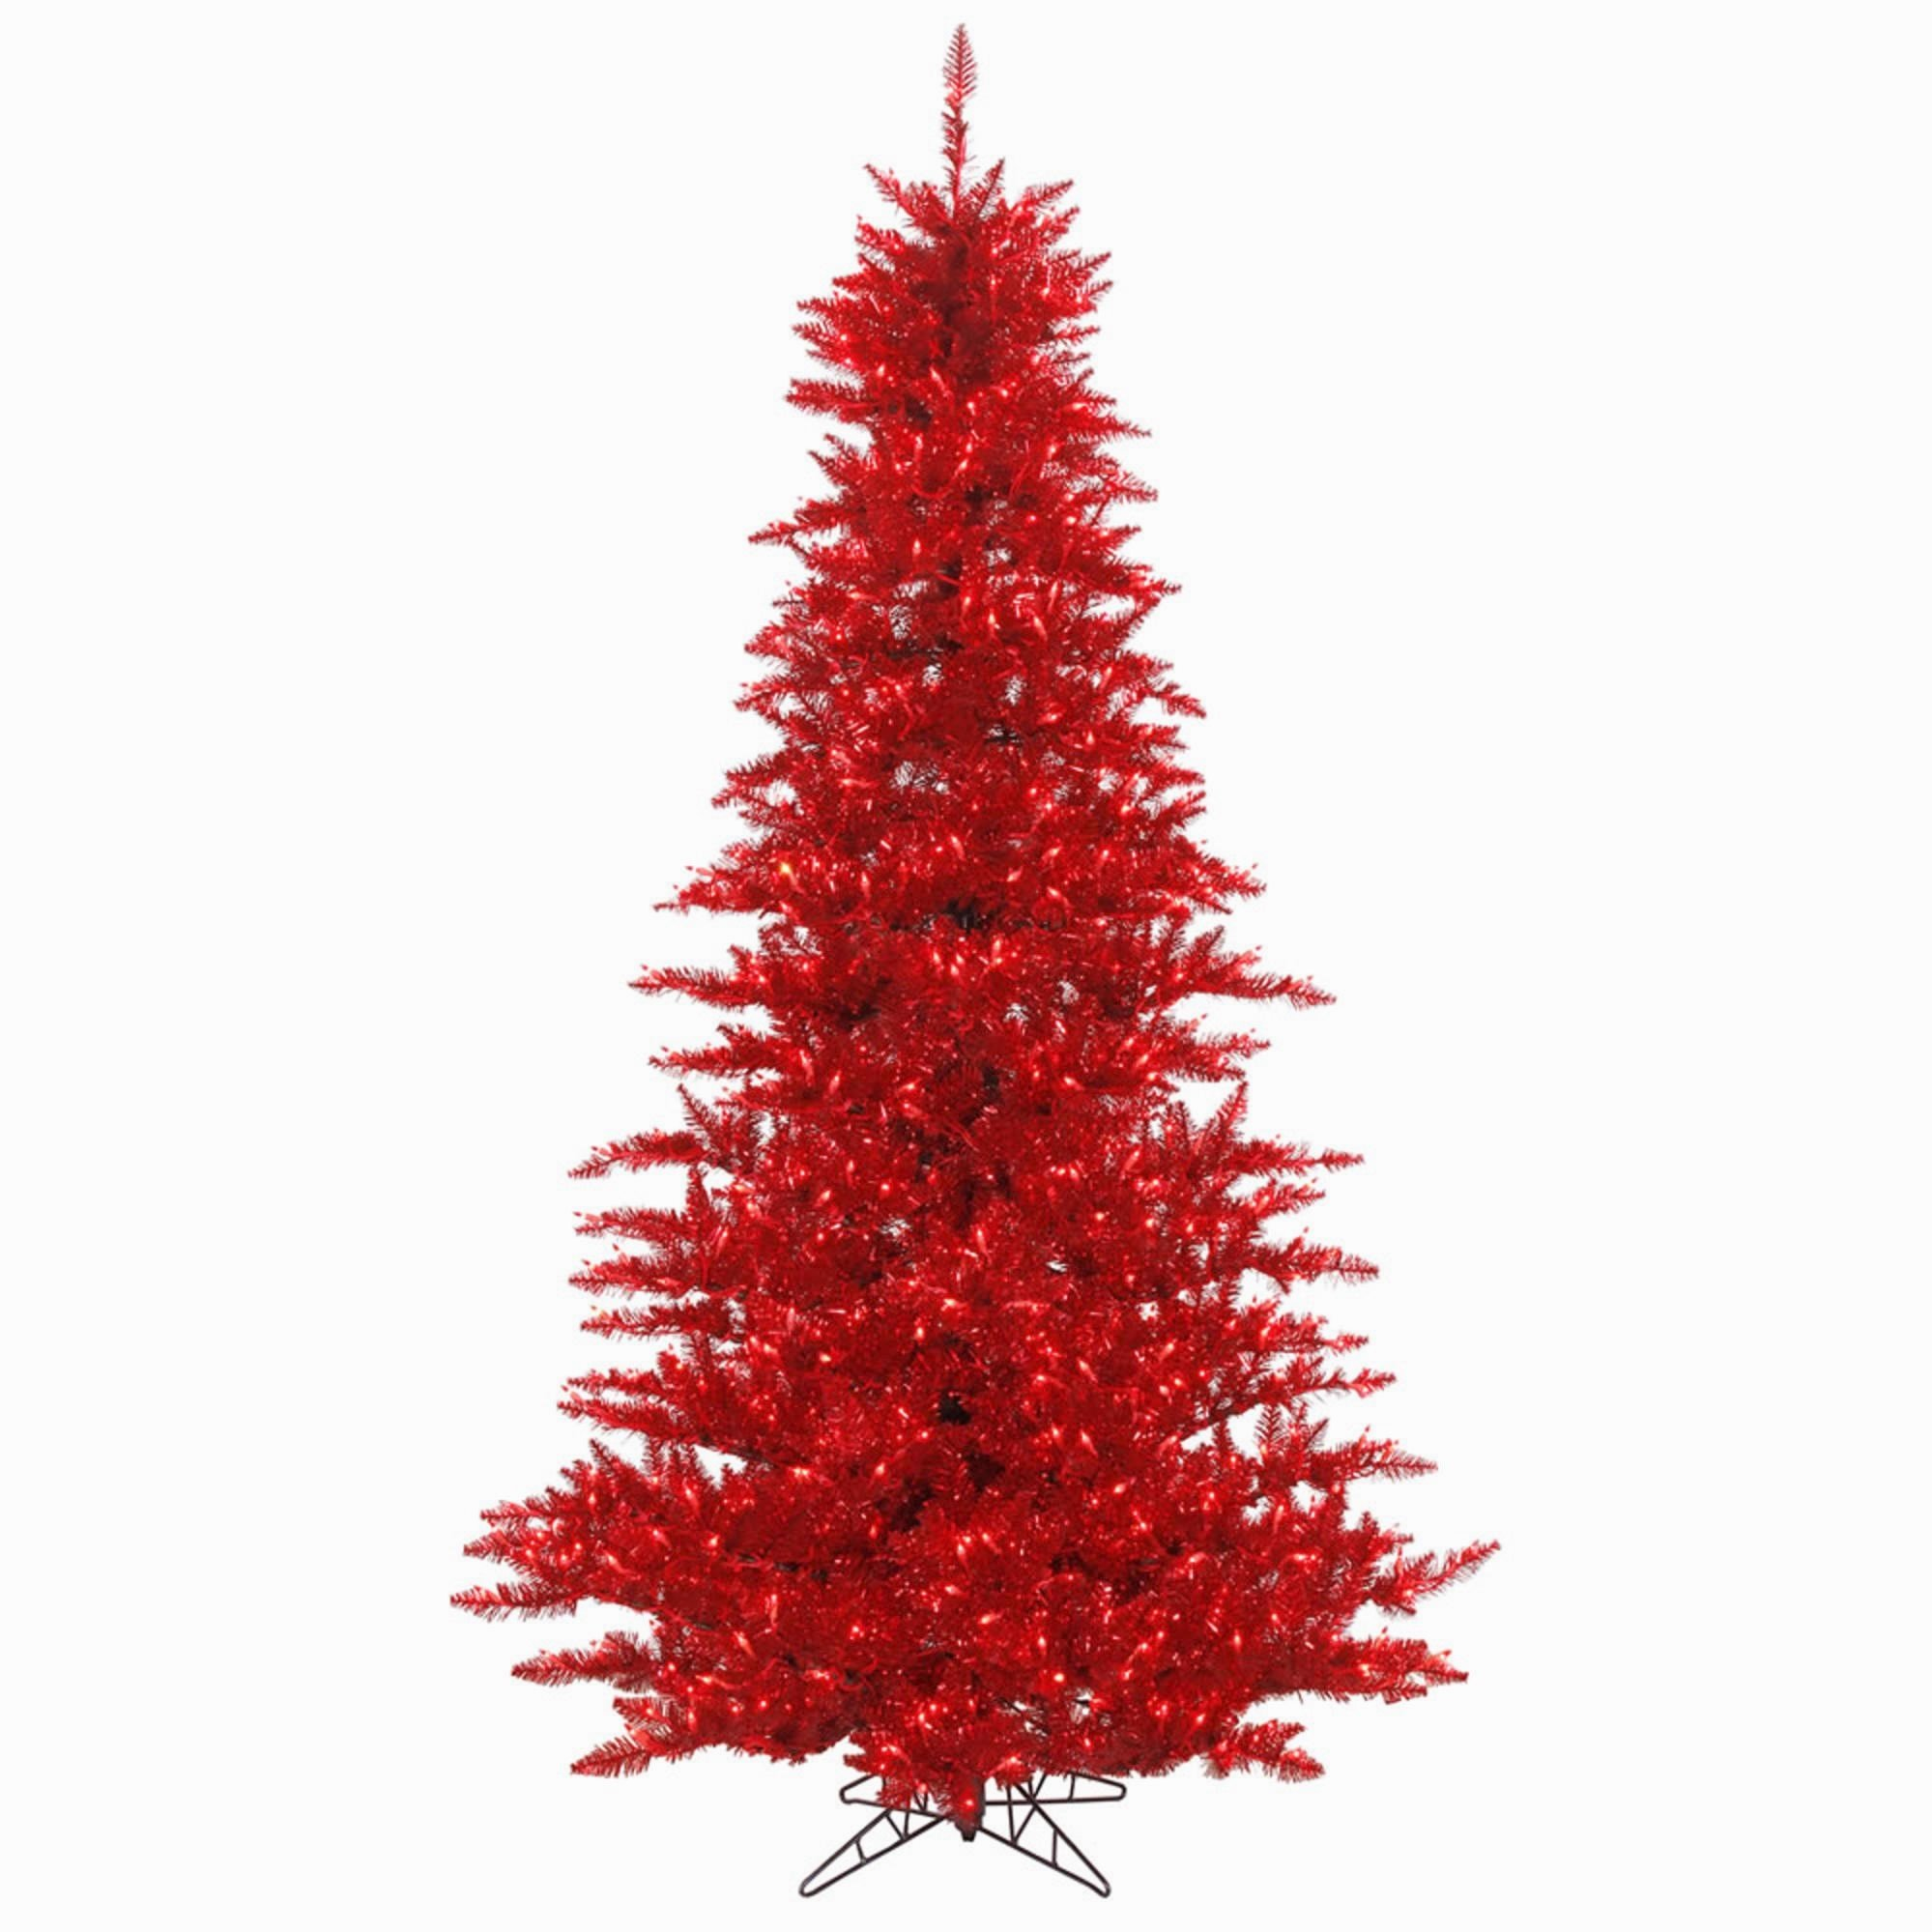 Artificial Christmas Tree. Fake 3ft Xmas Fully Decorated Unlit Tinsel Red Fir Christmas Tree. Compact, With Lush Branches & Natural Look. Great For Indoor, Holiday Season Party Decor. Festive Mood. by Artificial-Christmas-Tree